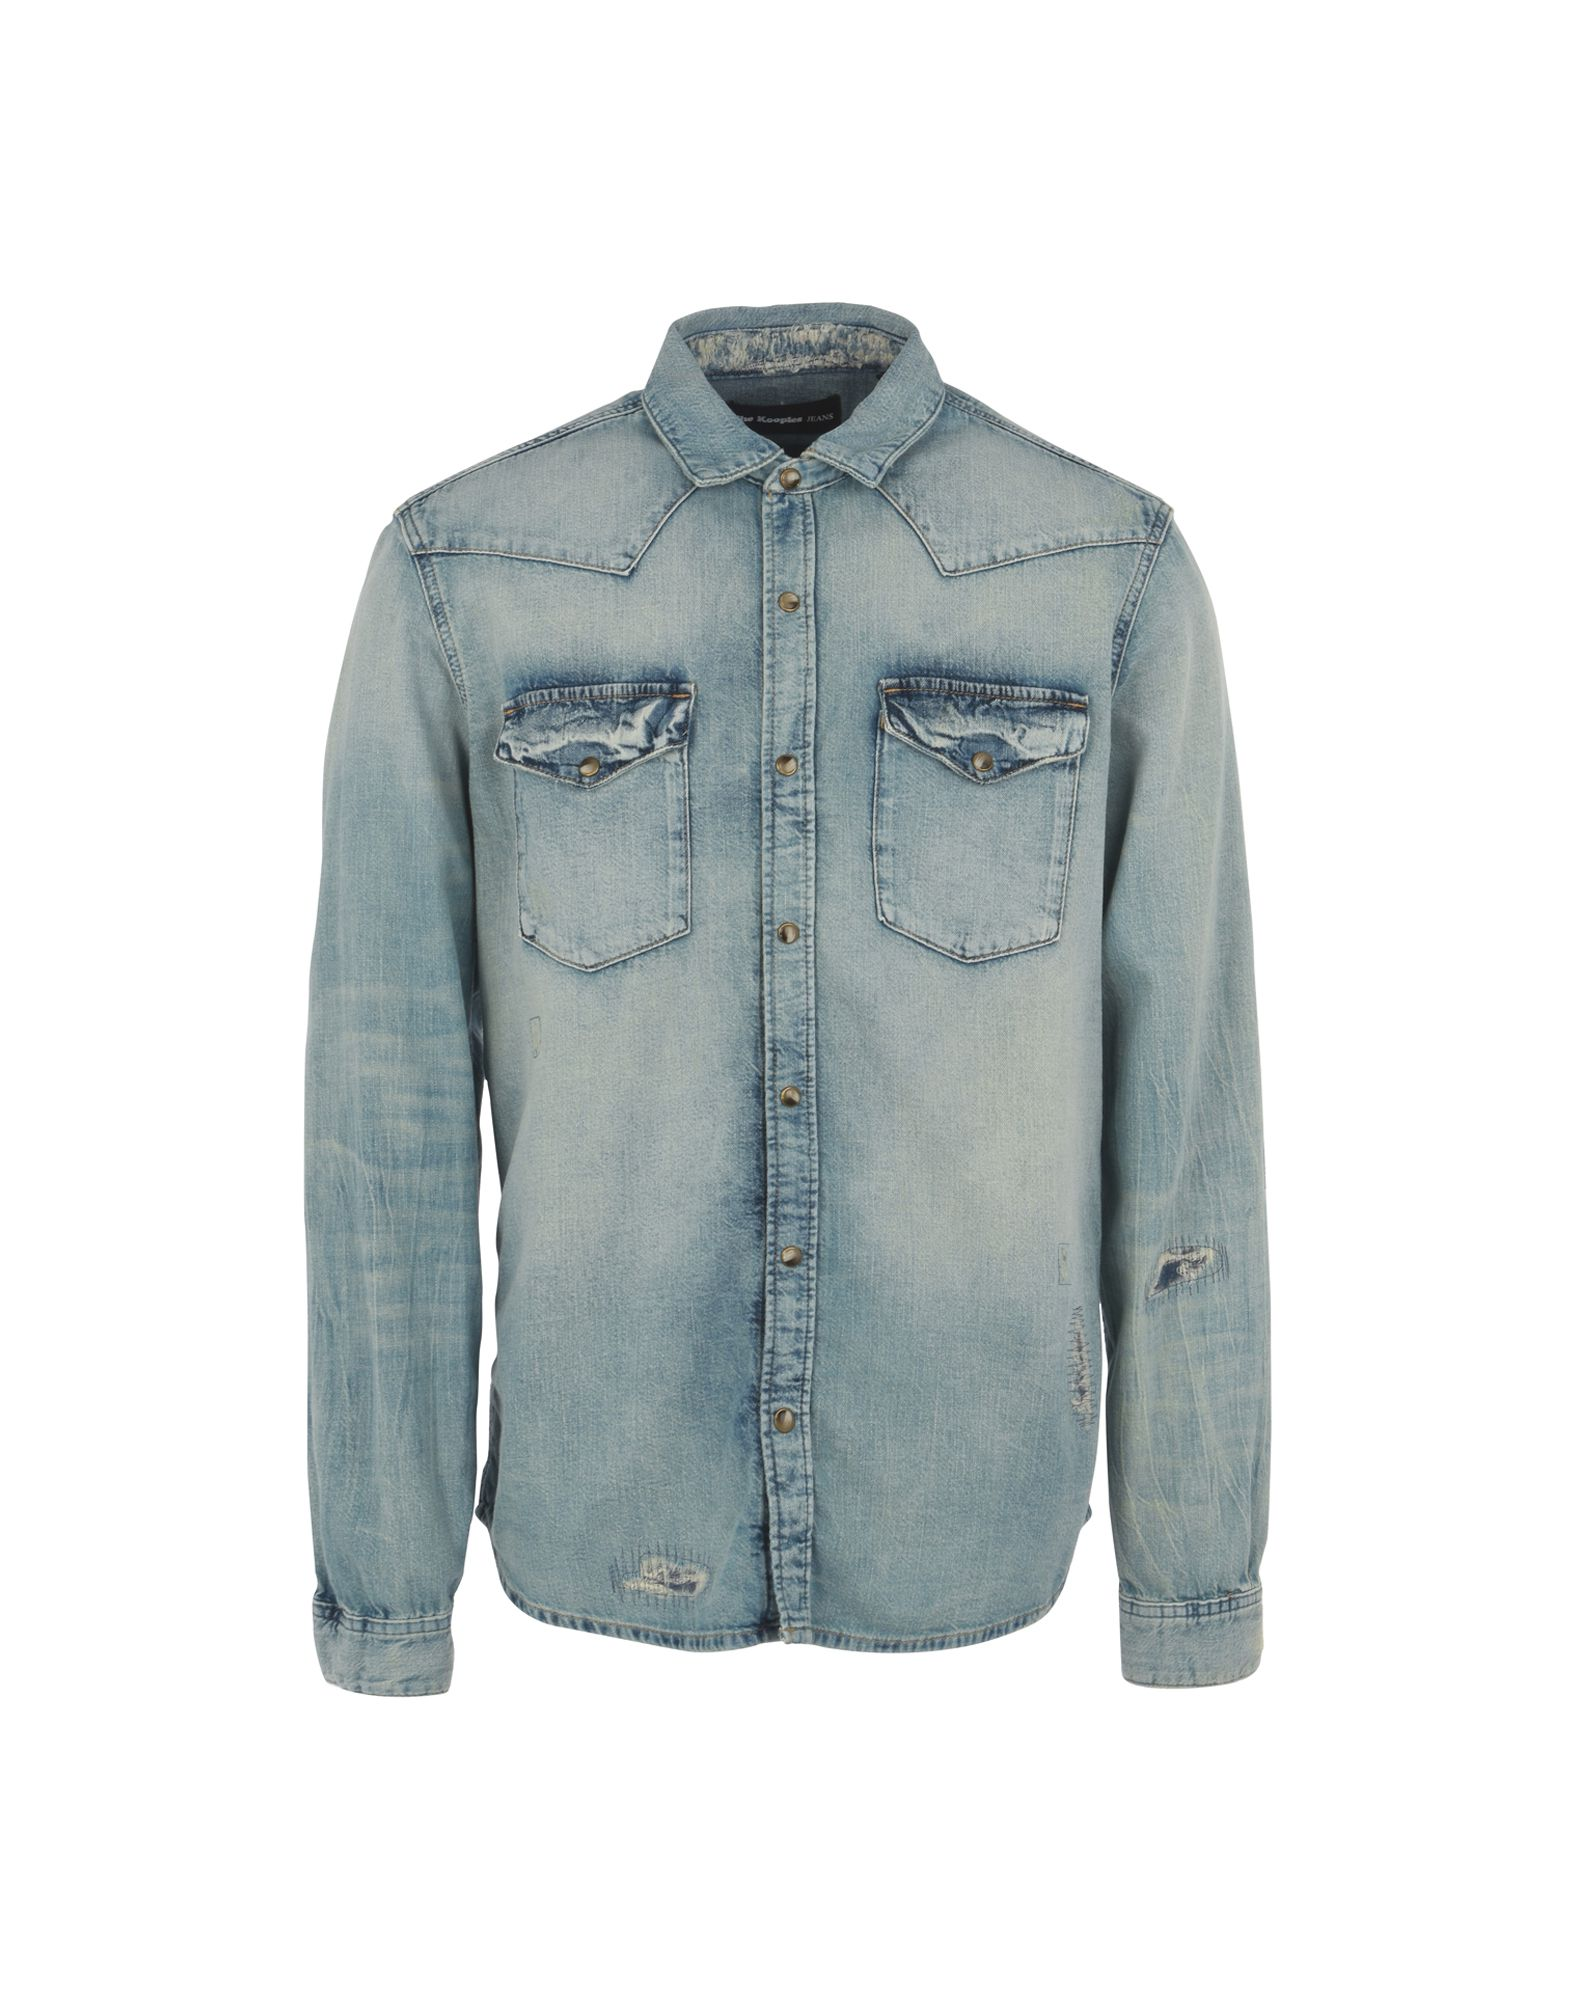 Camicia Jeans The Kooples Top-Stitched Shirt - Donna - Acquista online su